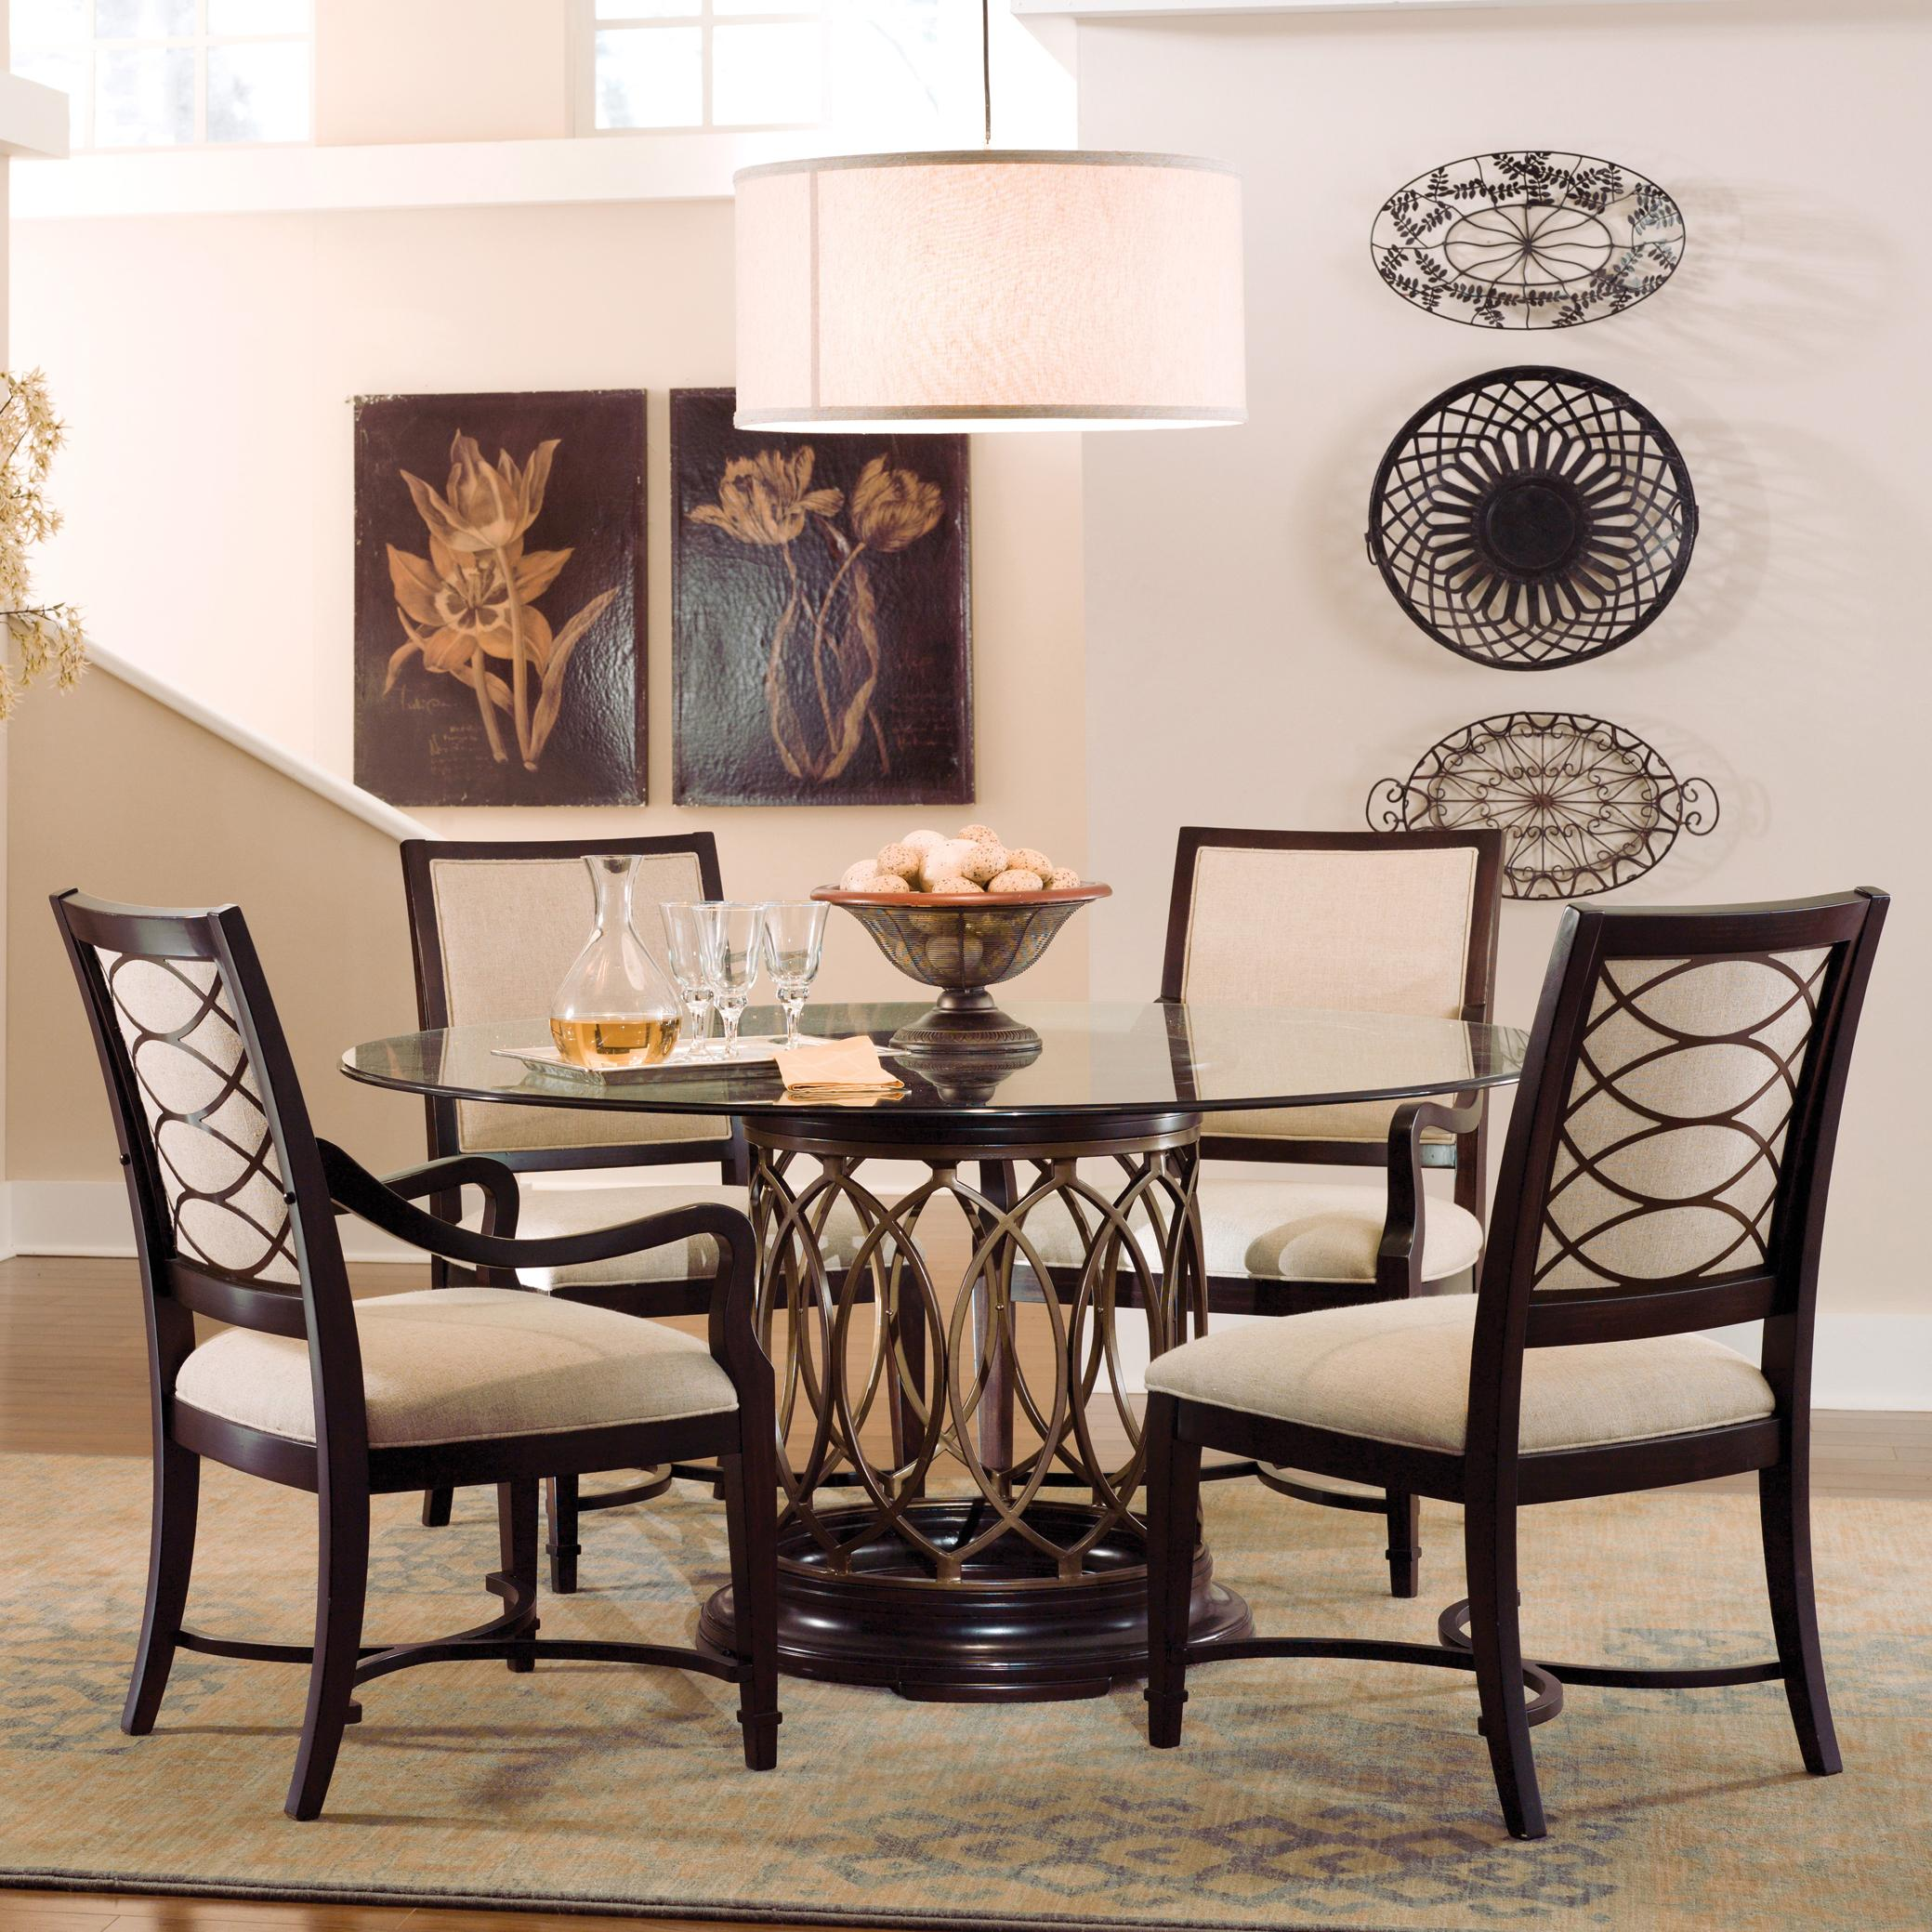 A R T Furniture Inc Intrigue Round Glass Top Dining Table With Upholstered Arm Side Chairs